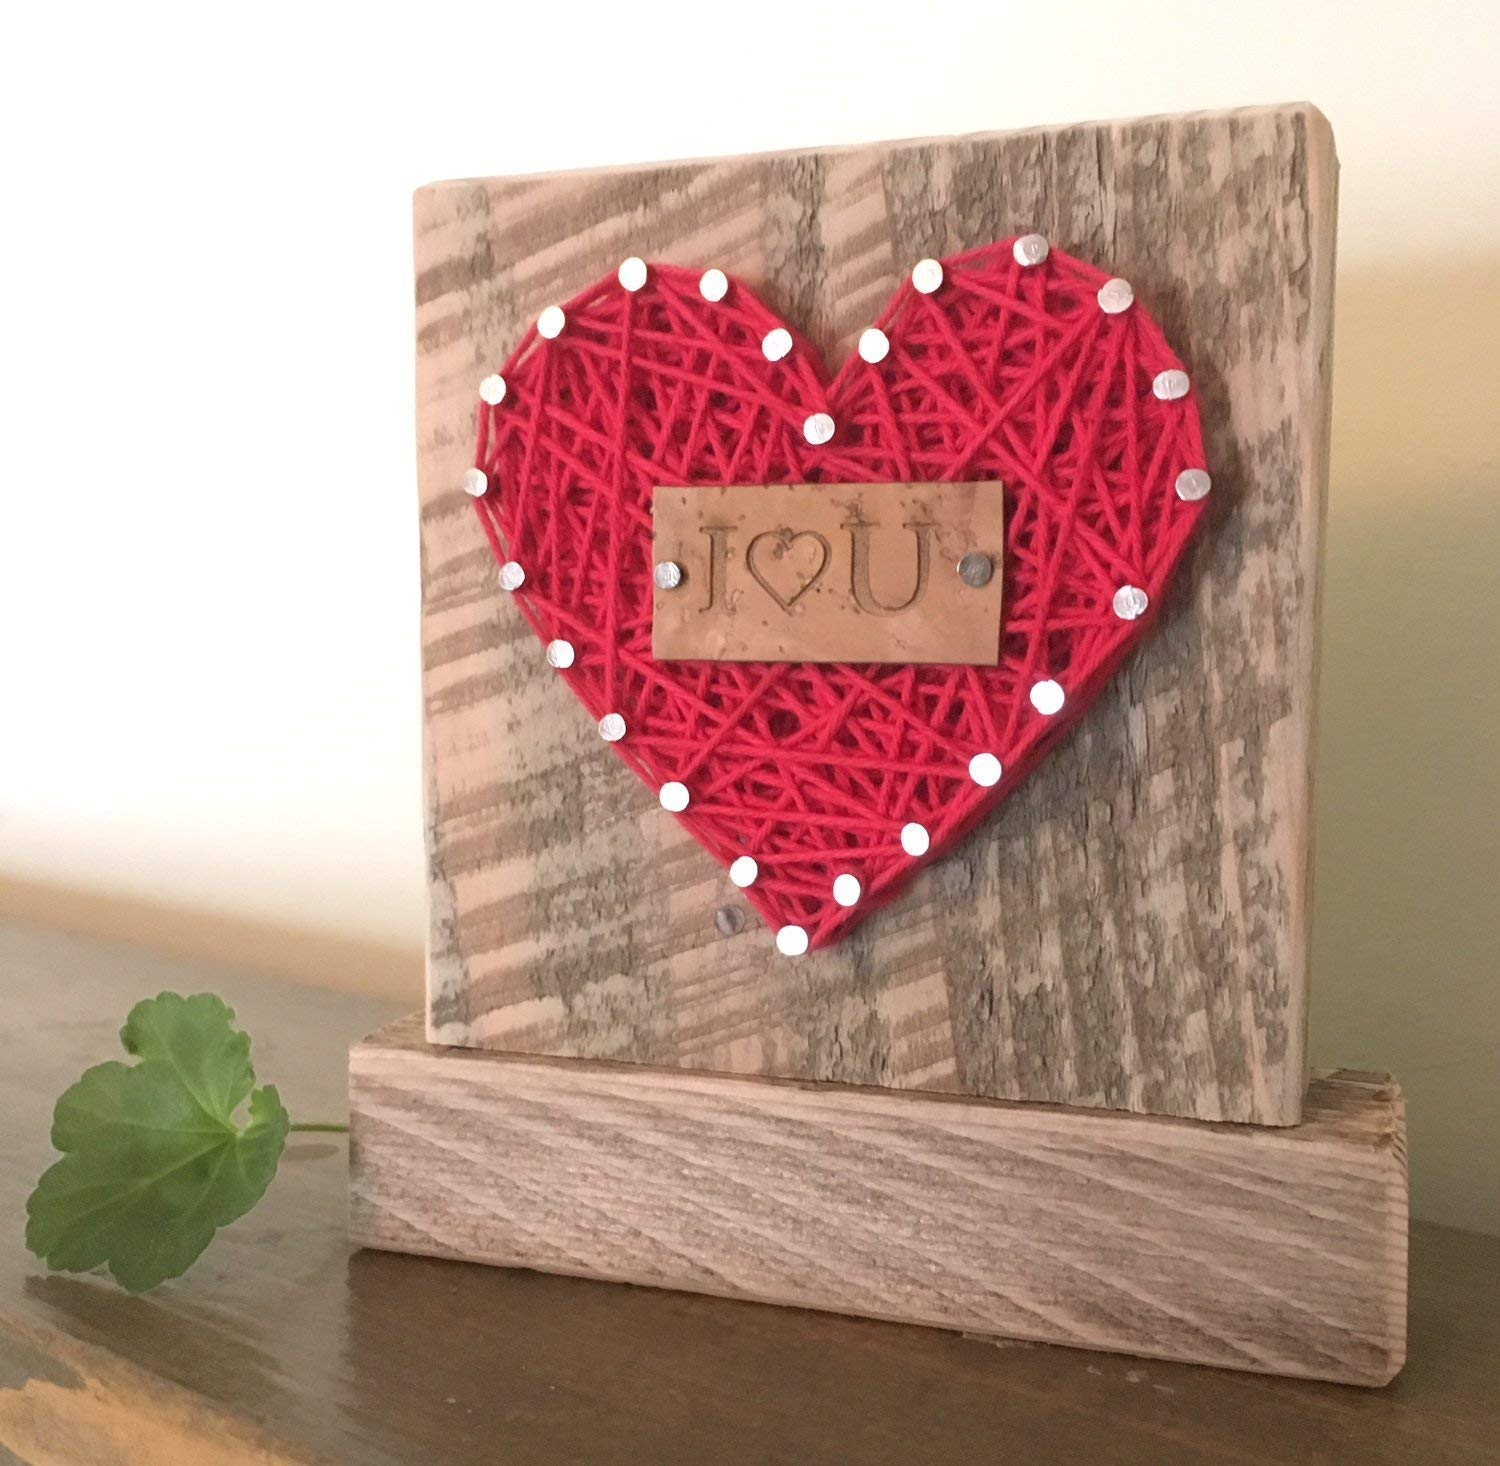 Sweet & small I love you string art heart block sign gift. Perfect for Birthday, Anniversary or just because gifts. Made in the USA by Nail it Art